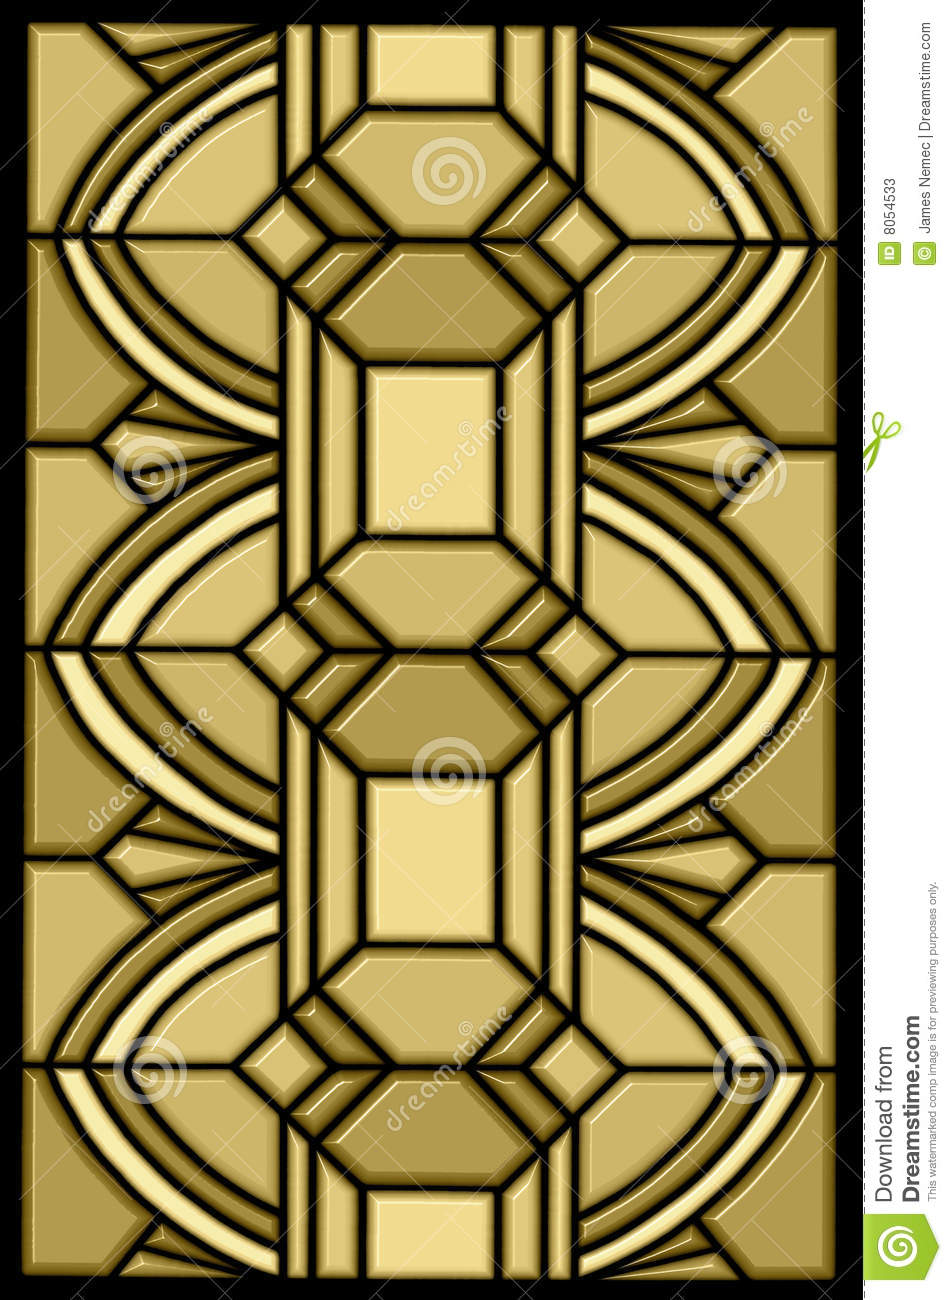 Art deco stain glass design stock photos image 8054533 for Design art deco